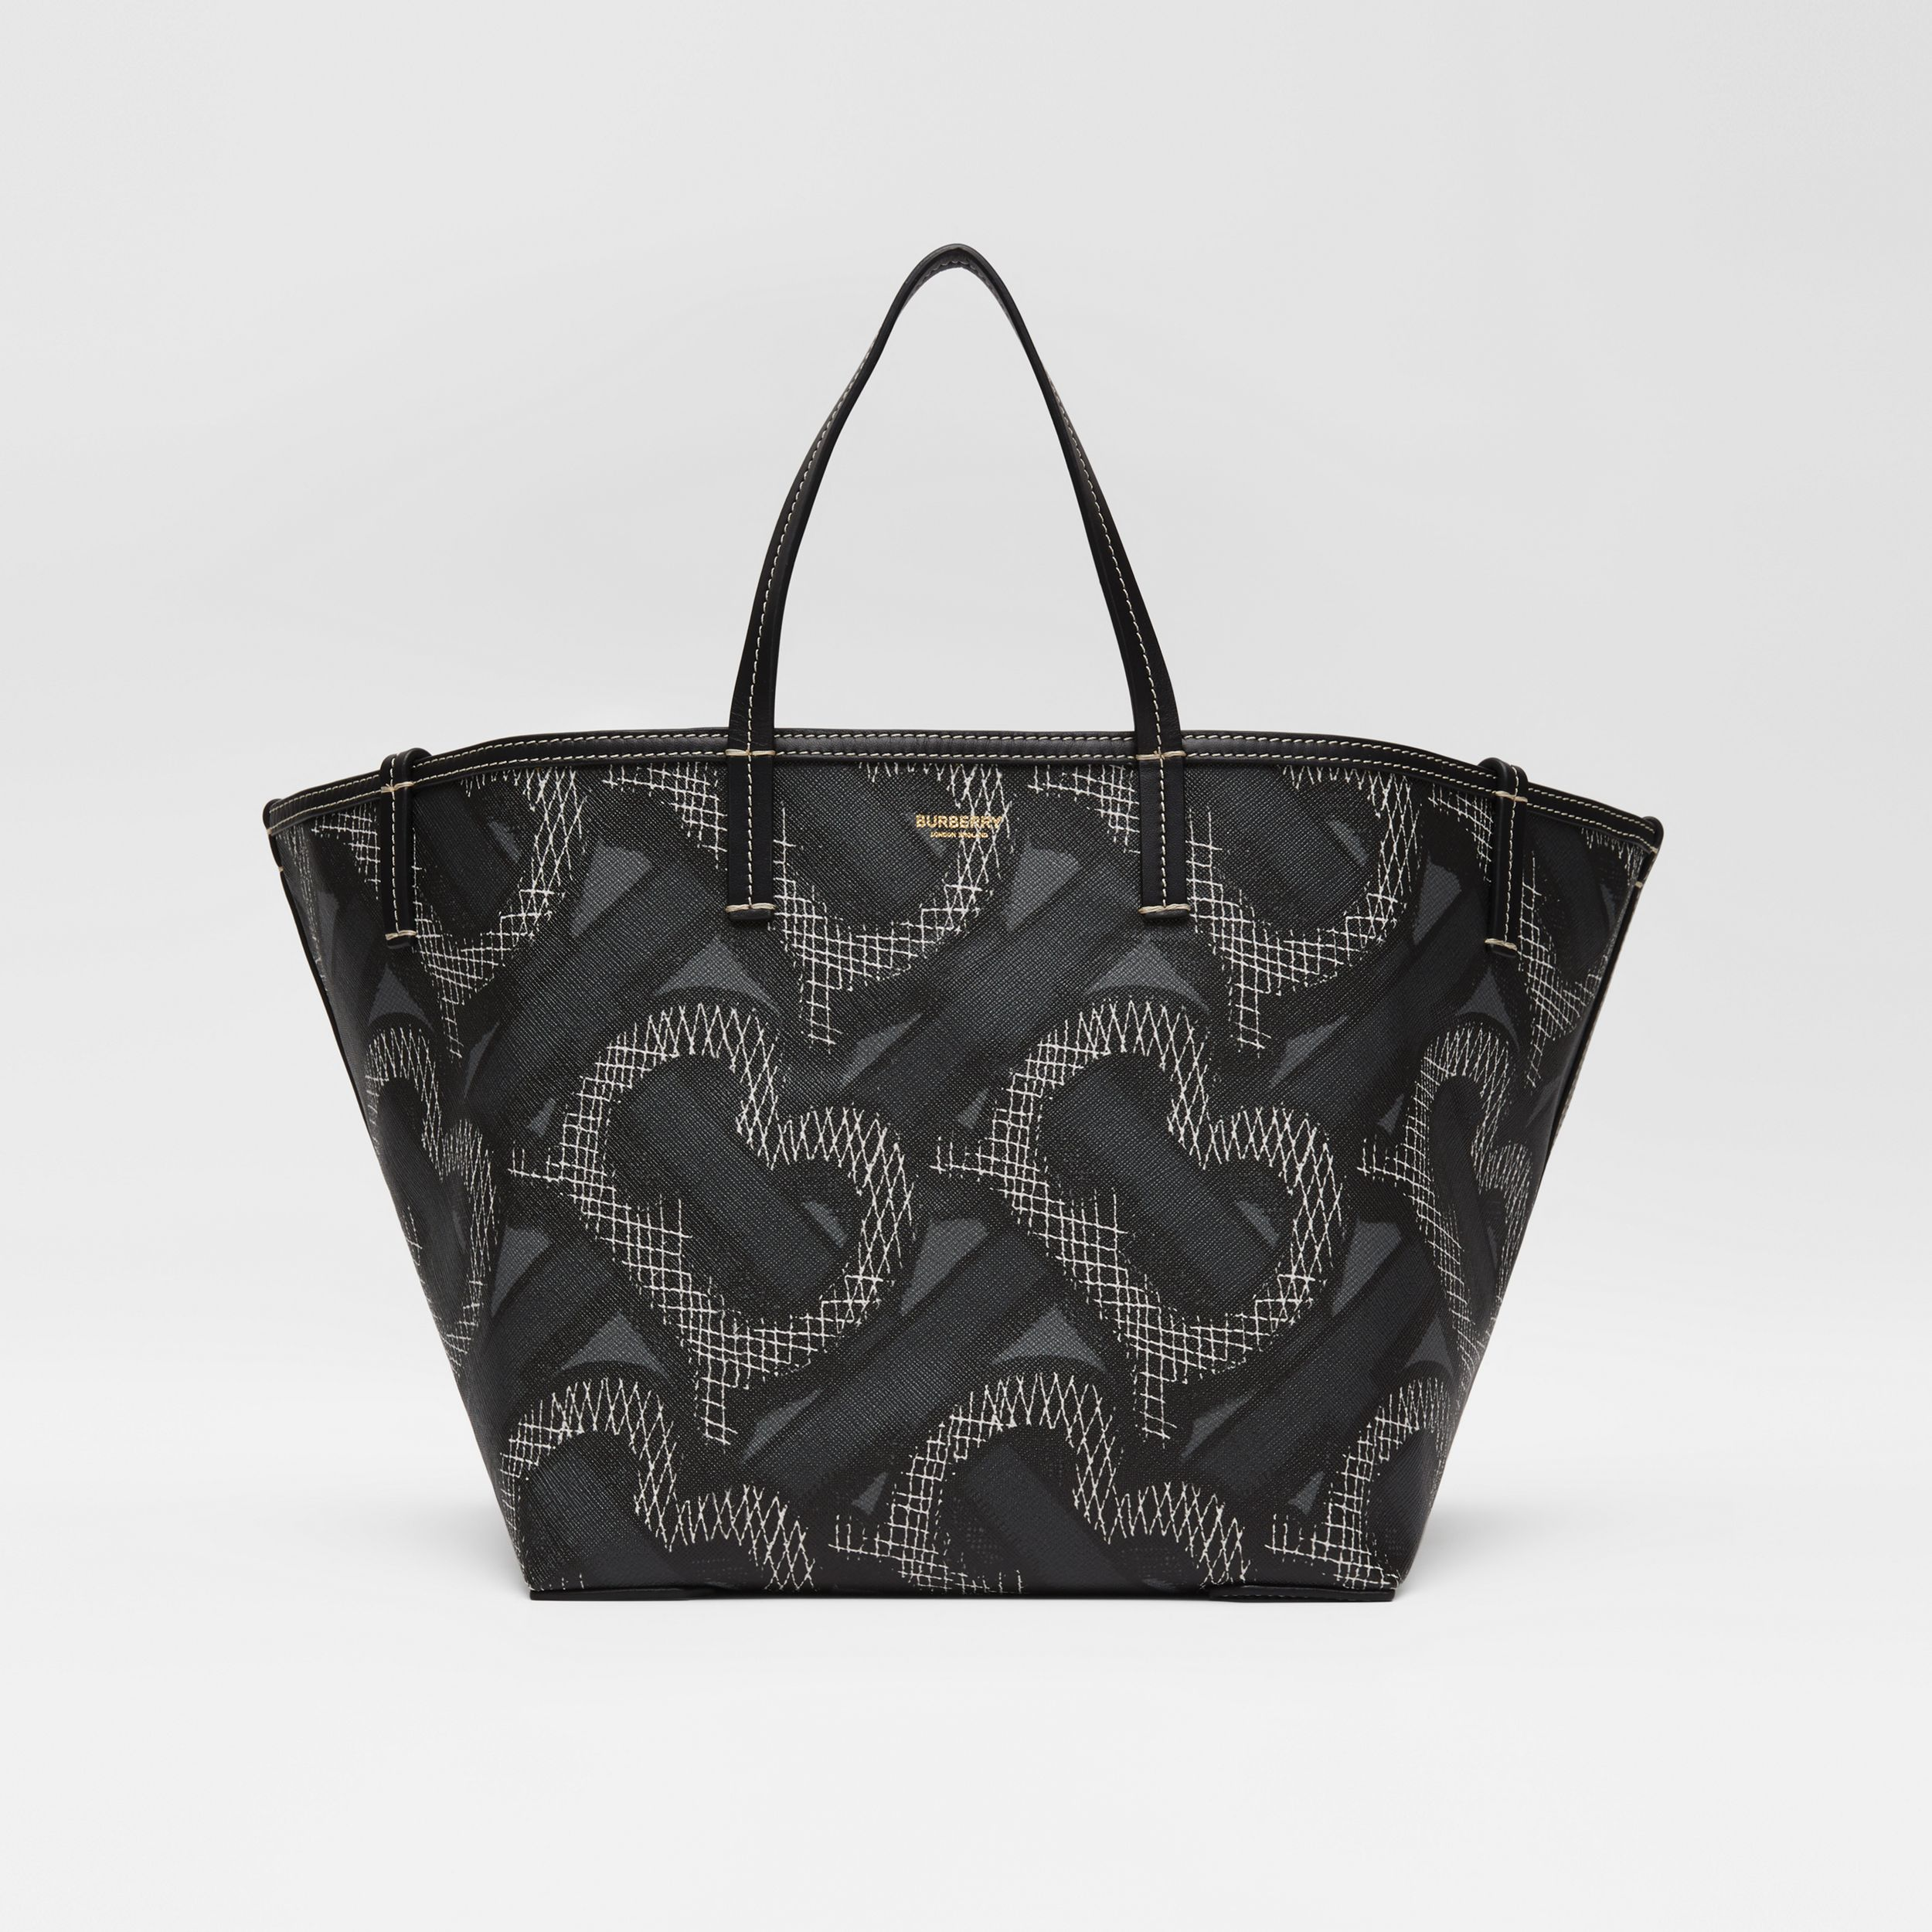 Mini Monogram Print E-canvas Beach Tote in Graphite | Burberry - 1